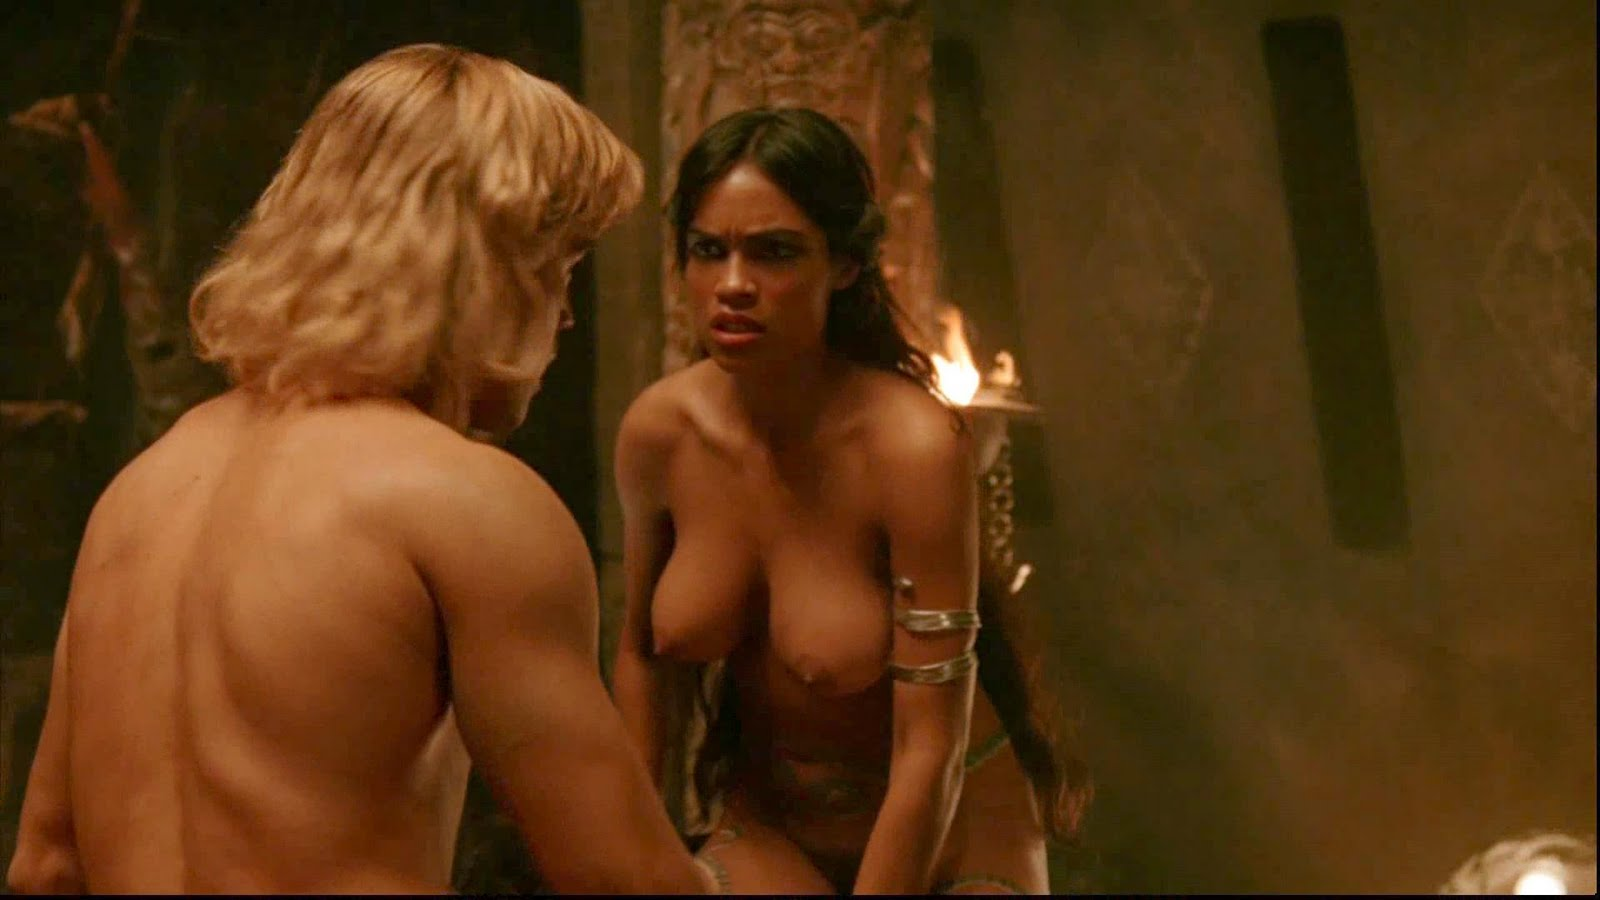 http://2.bp.blogspot.com/-eOmjiJrM9Ew/TopYxn0bHhI/AAAAAAAABQw/A2B9oU8rt4k/s1600/rosario-dawson-full-and-frontal-nude-topless-for-alexander-movie-hd-3x3.jpg